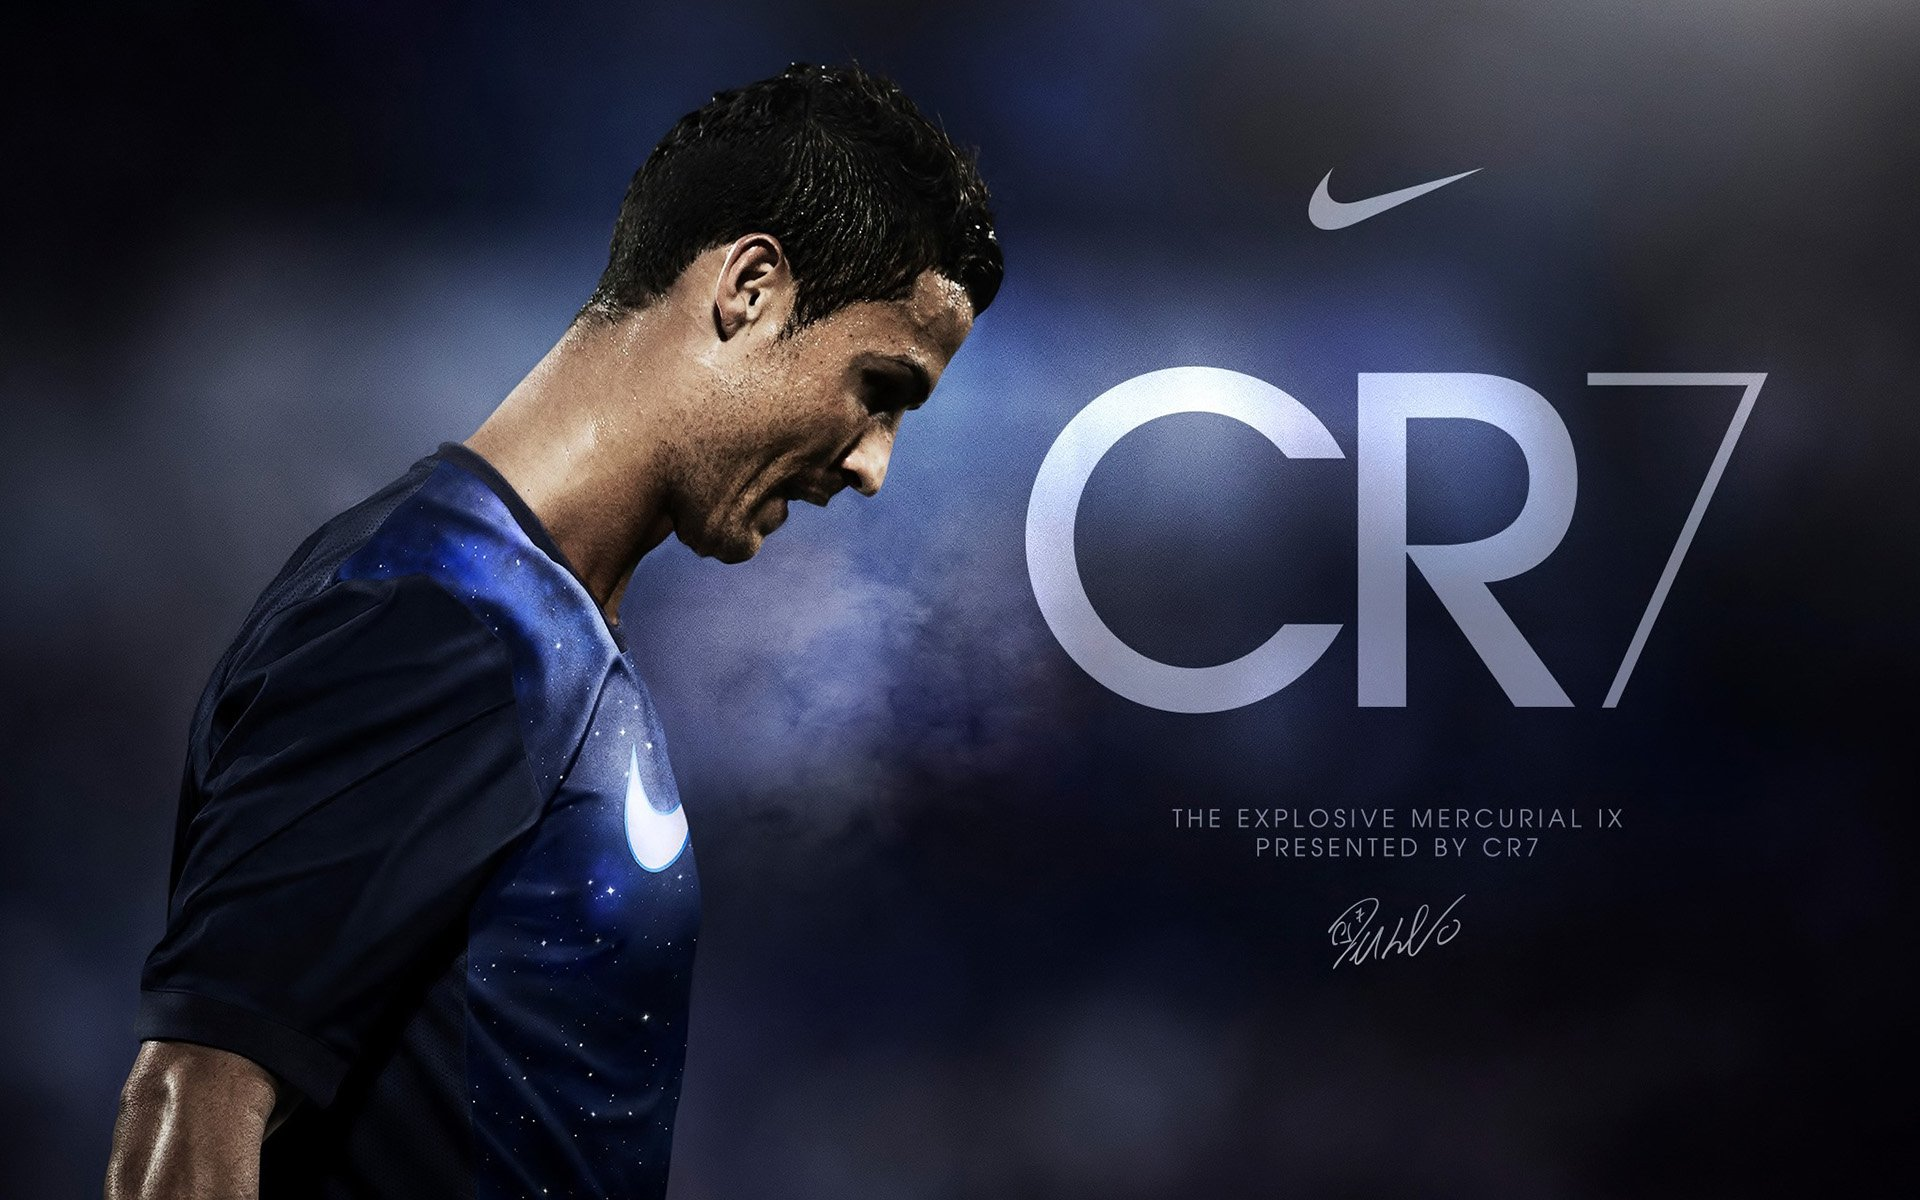 77 cristiano ronaldo hd wallpapers | background images - wallpaper abyss